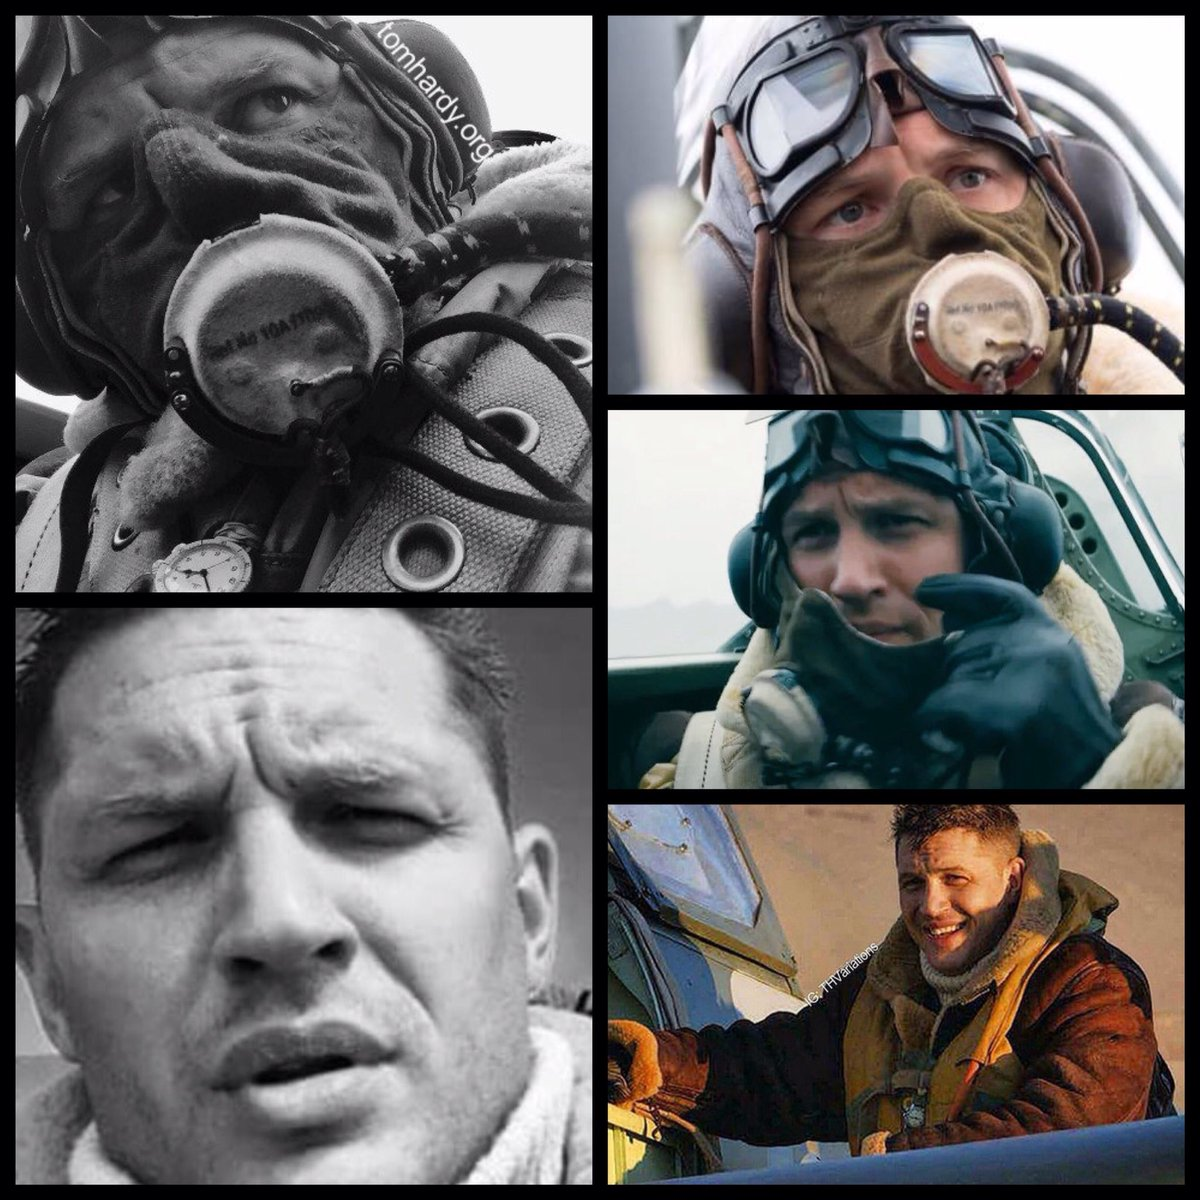 Farrier! Our Hero!  #TomHardy #Dunkirk<br>http://pic.twitter.com/1TLz5pAcMu